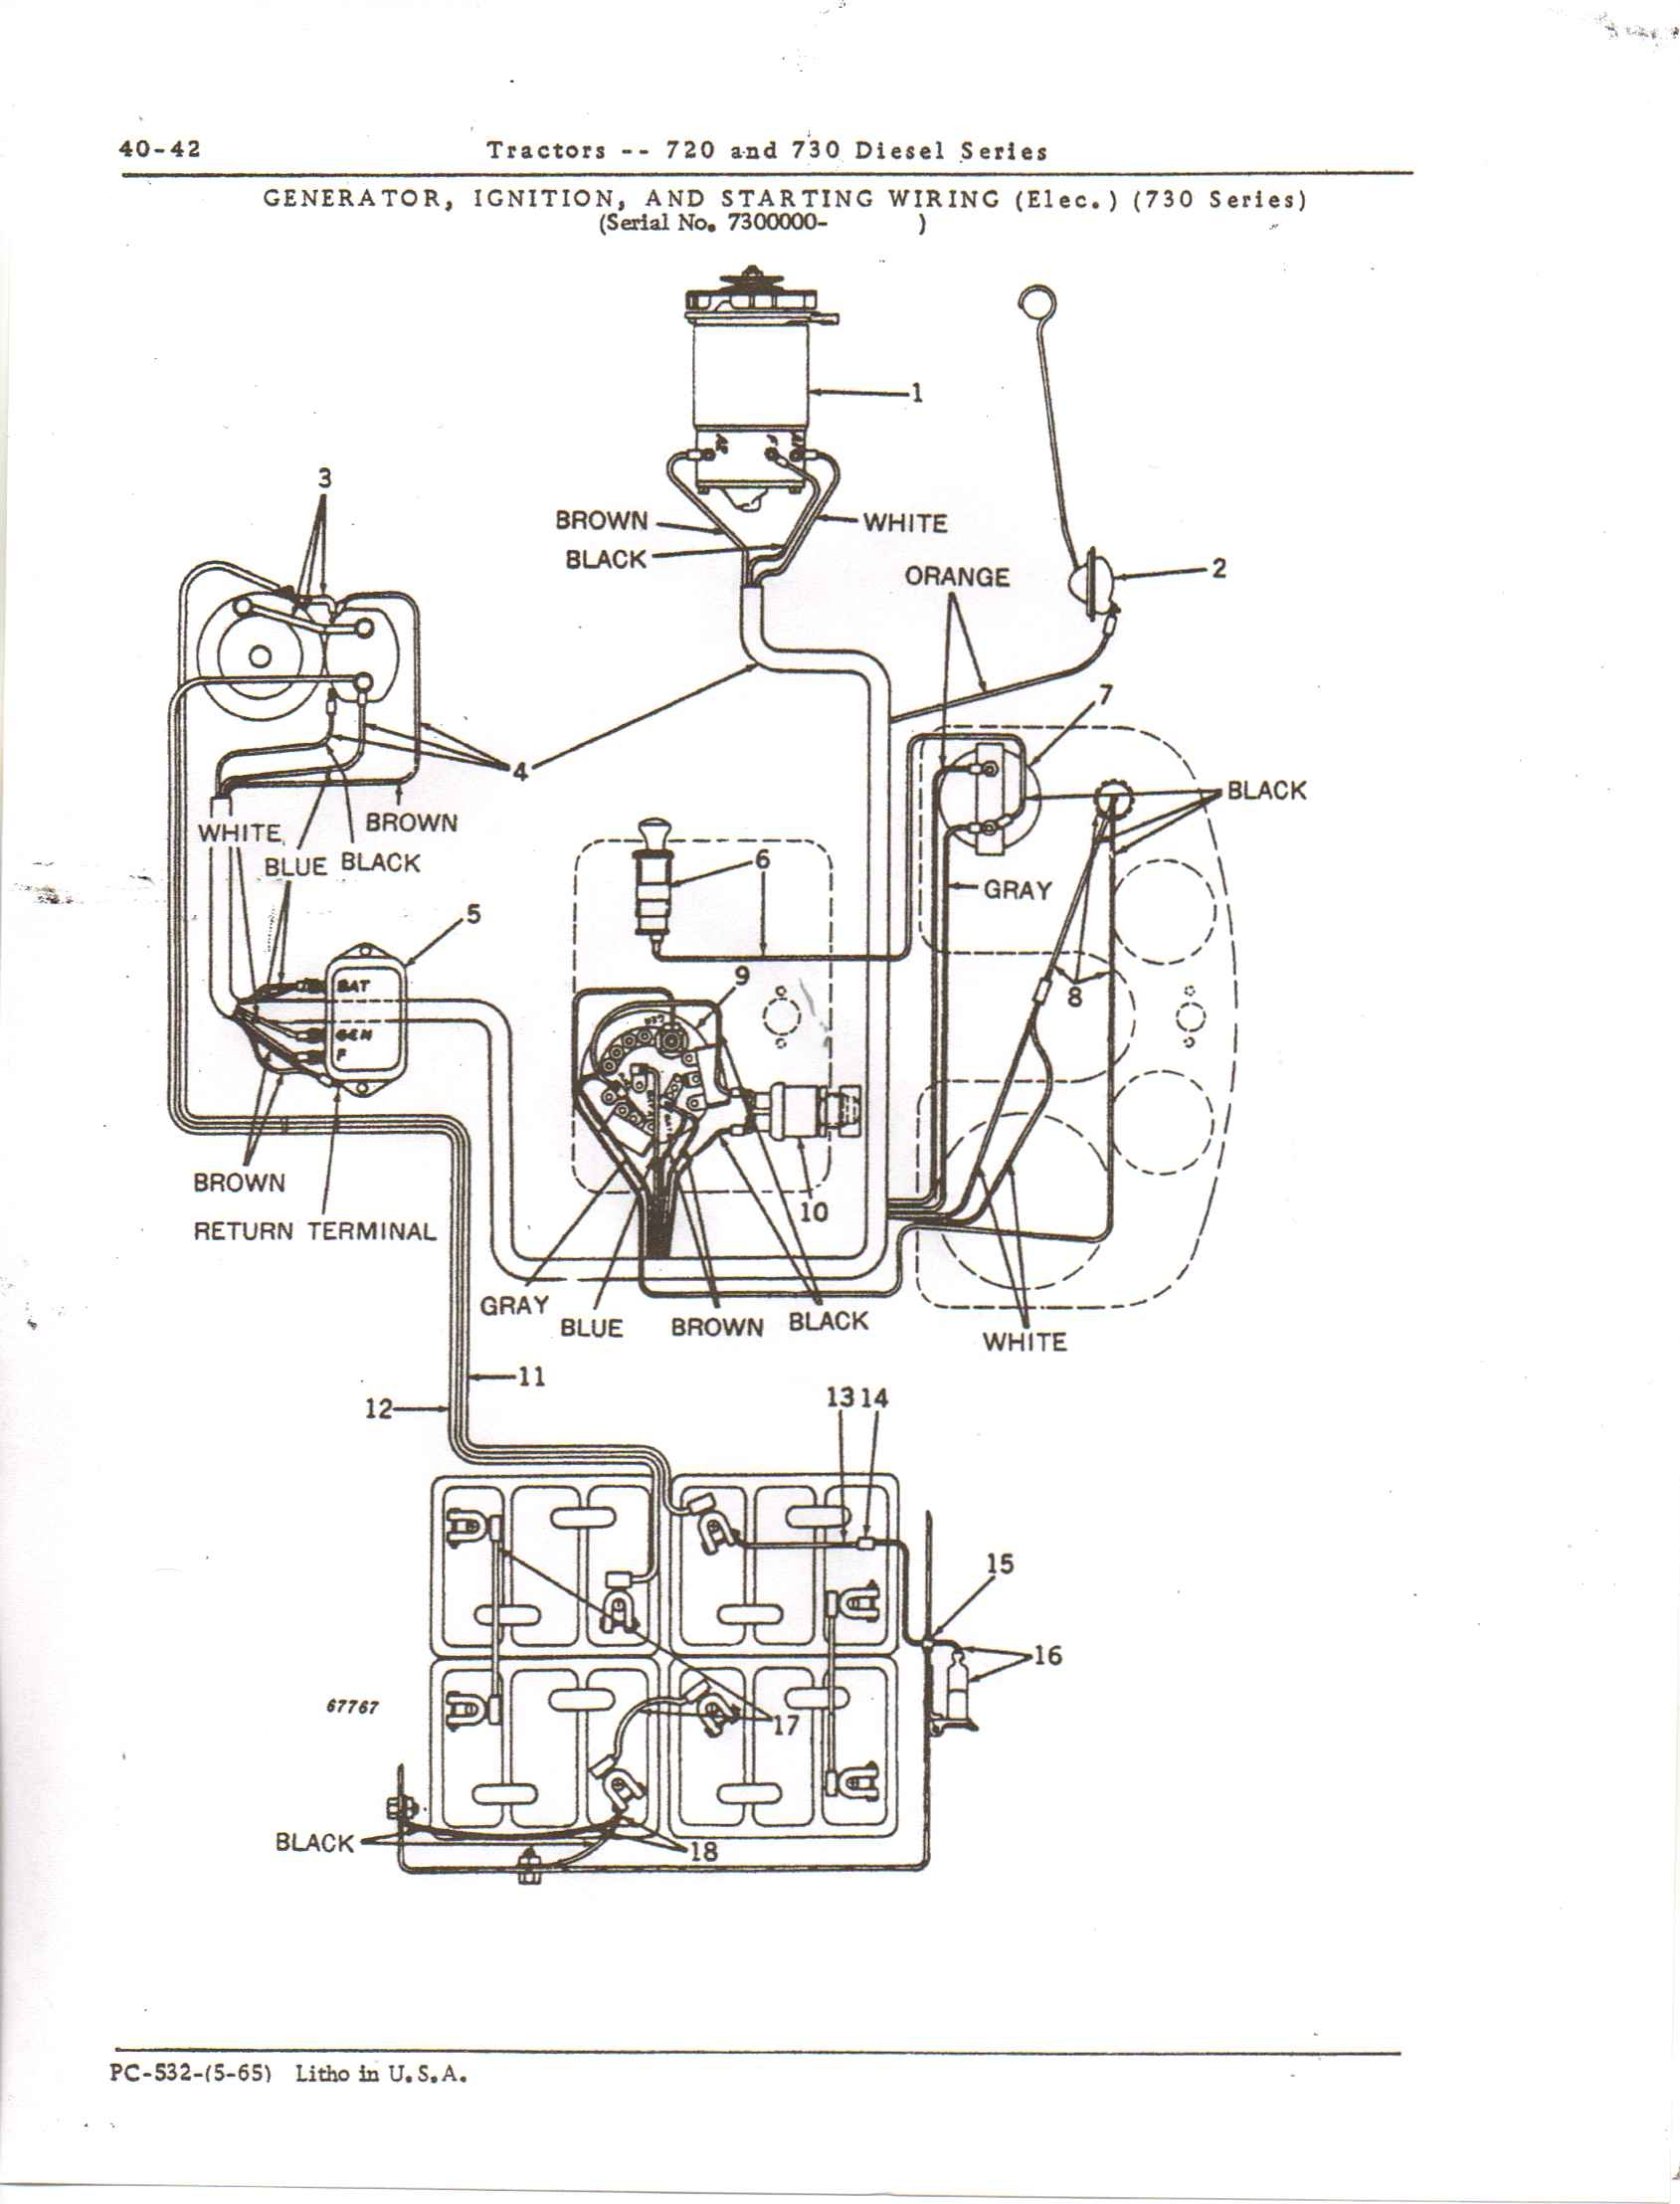 john deere parts diagrams wiring john deere engine diagrams john deere lawn mower wiring diagram | free wiring diagram